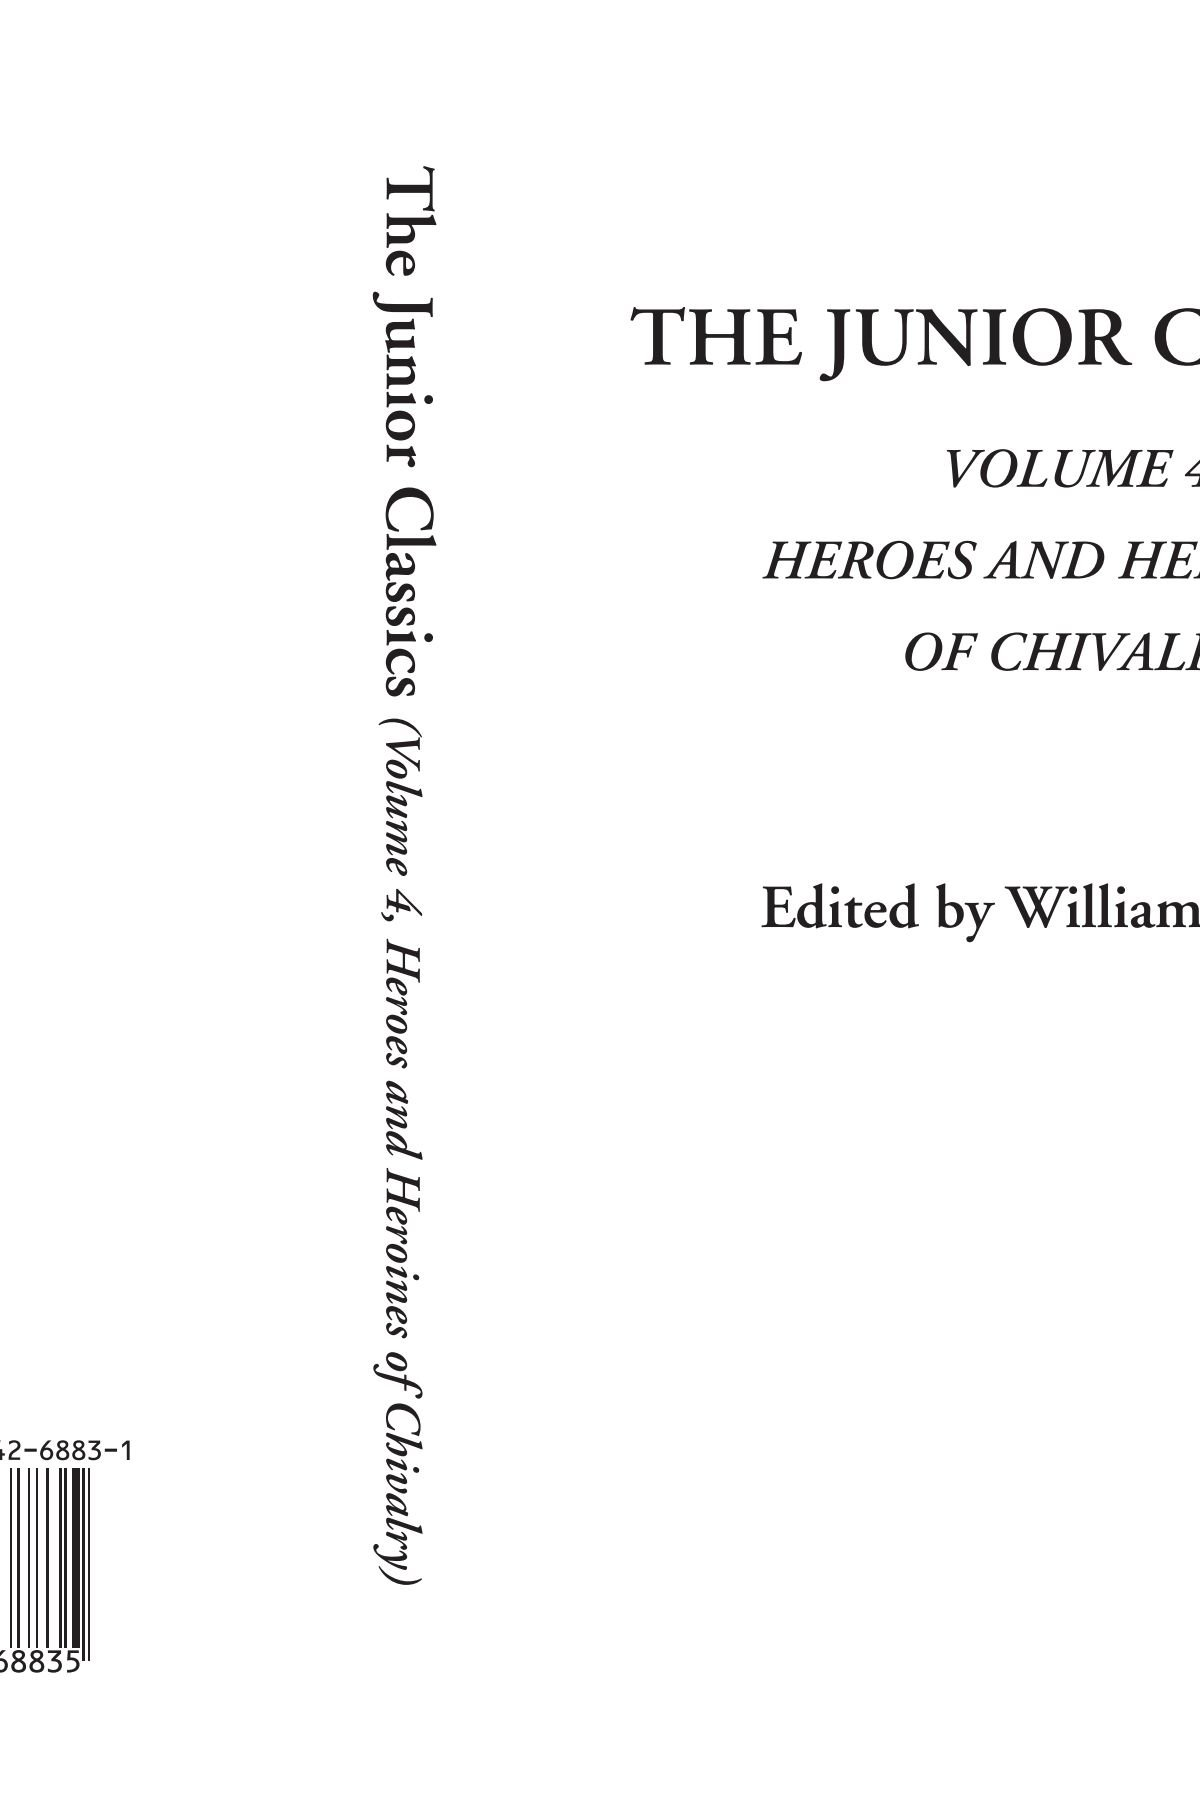 The Junior Classics (Volume 4, Heroes and Heroines of Chivalry) PDF